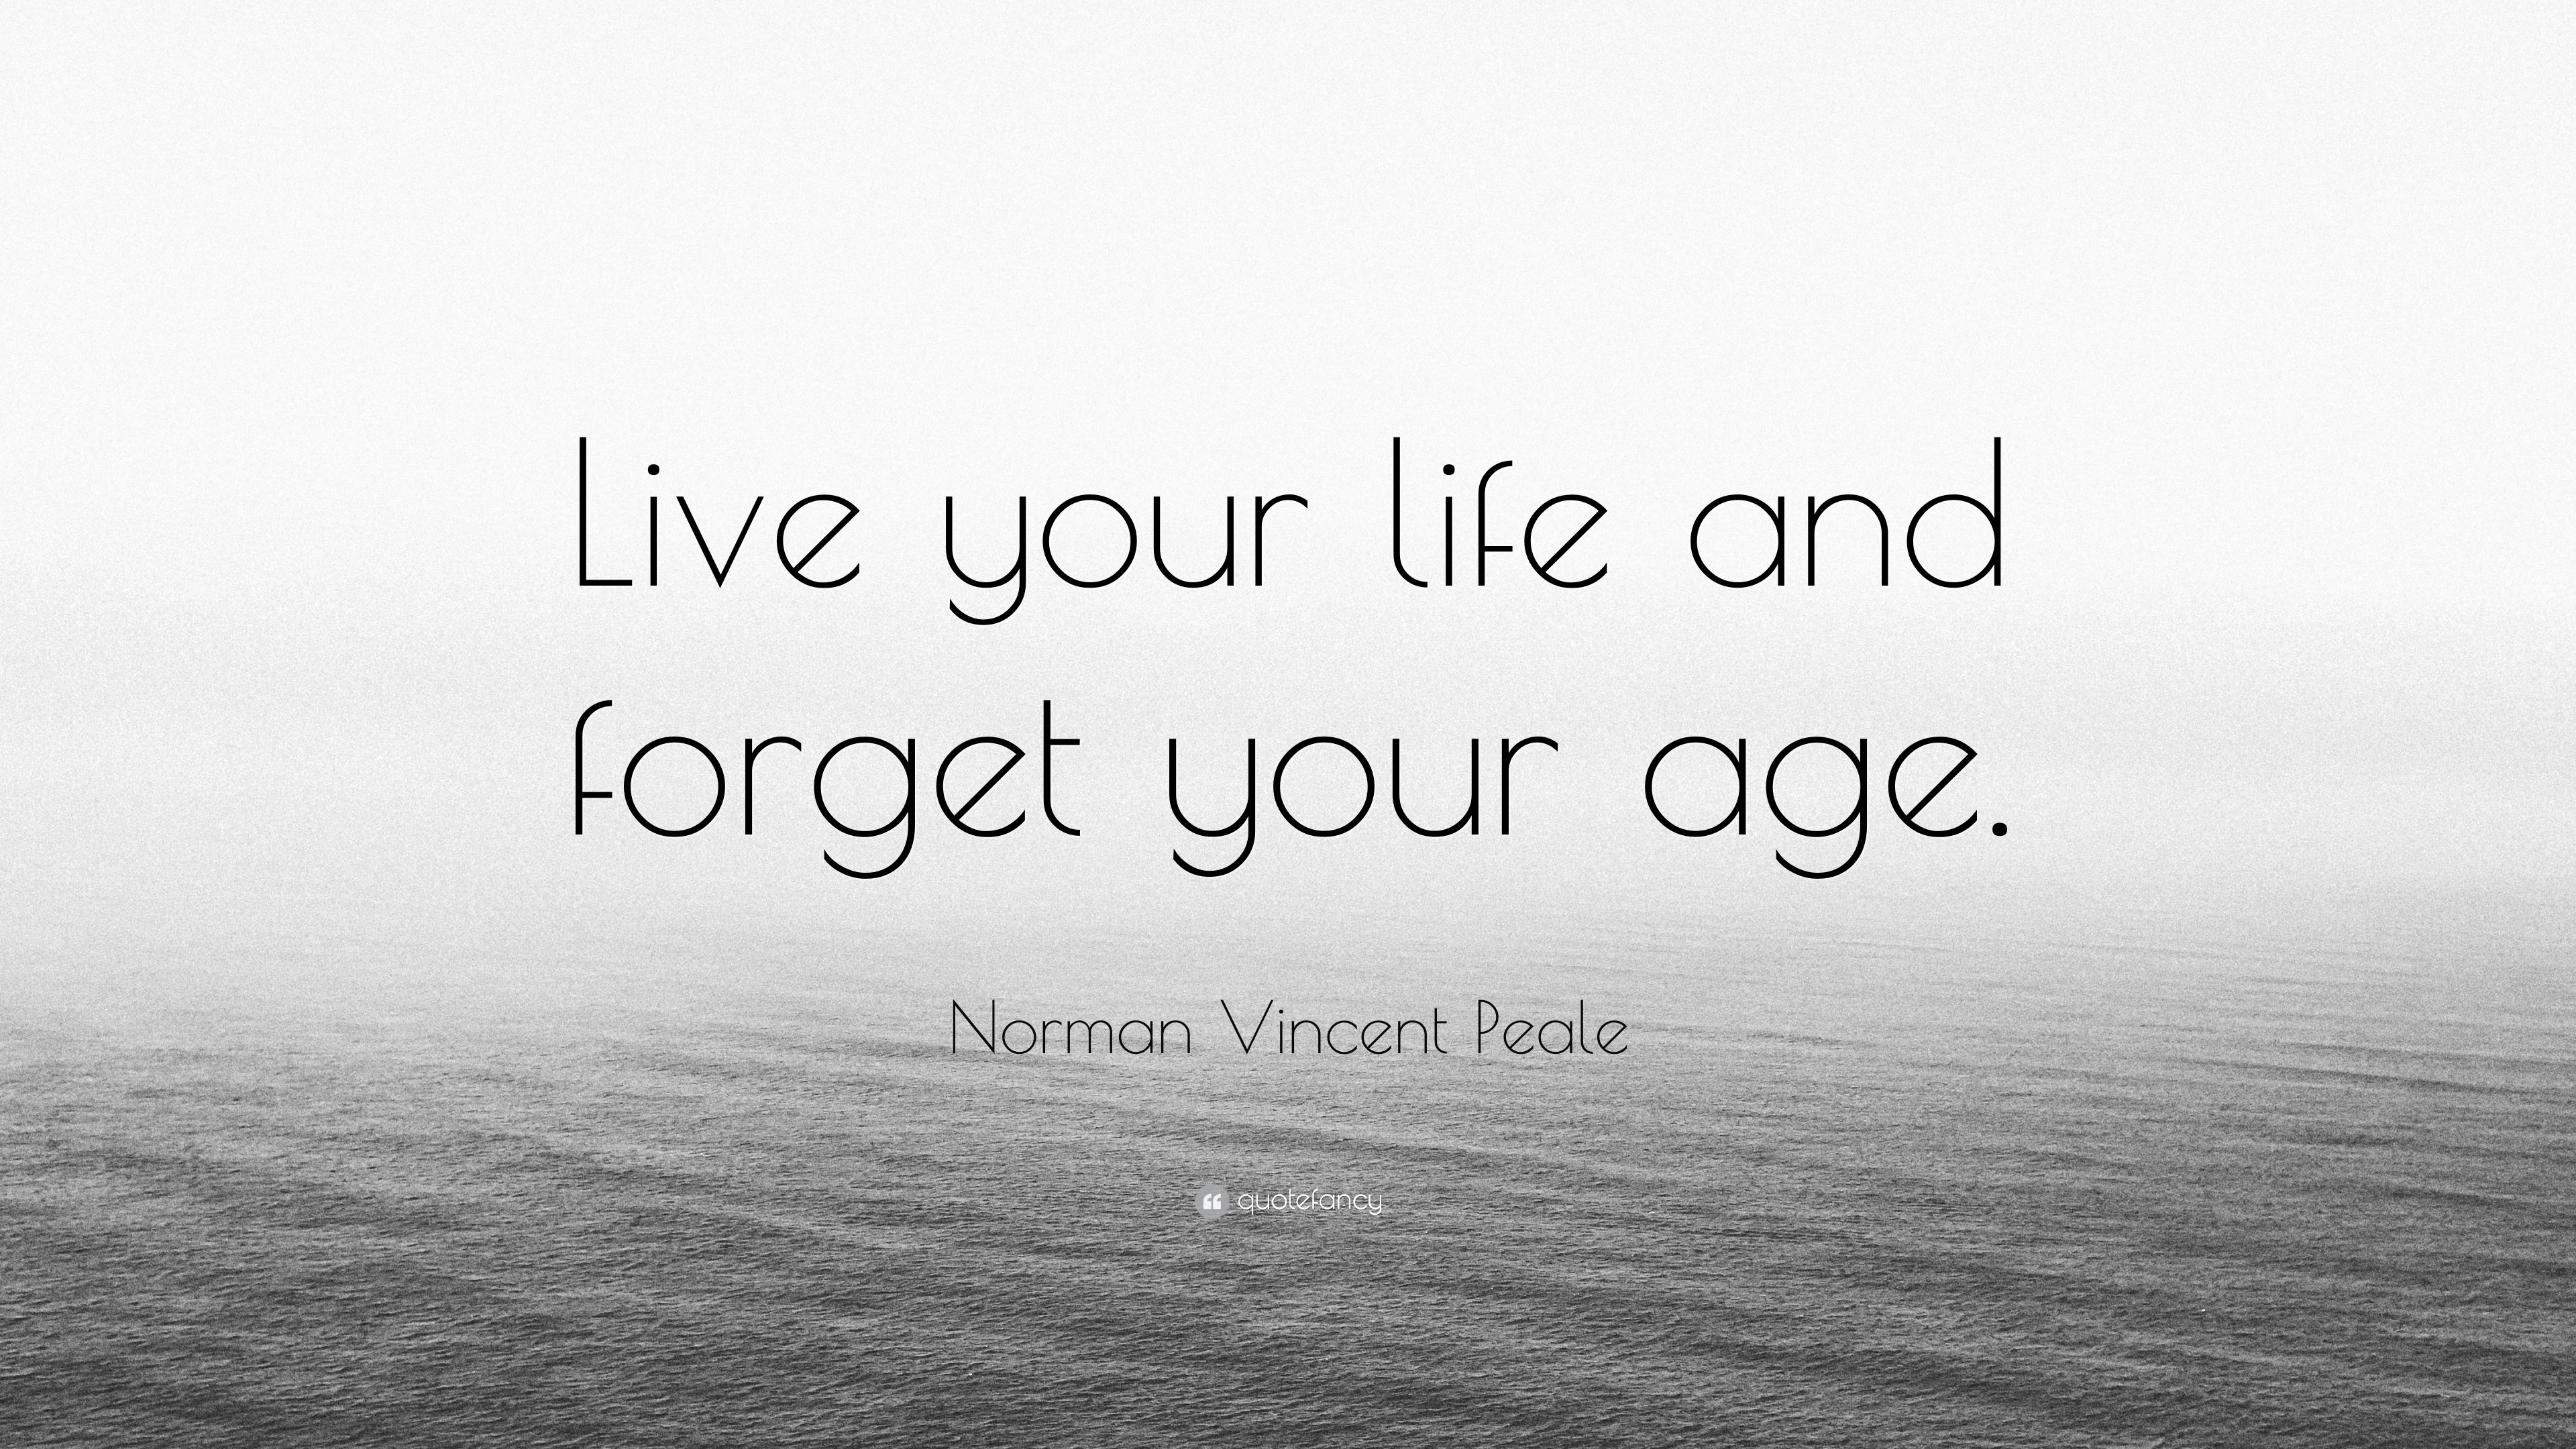 Norman Vincent Peale Quote: U201cLive Your Life And Forget Your Age.u201d